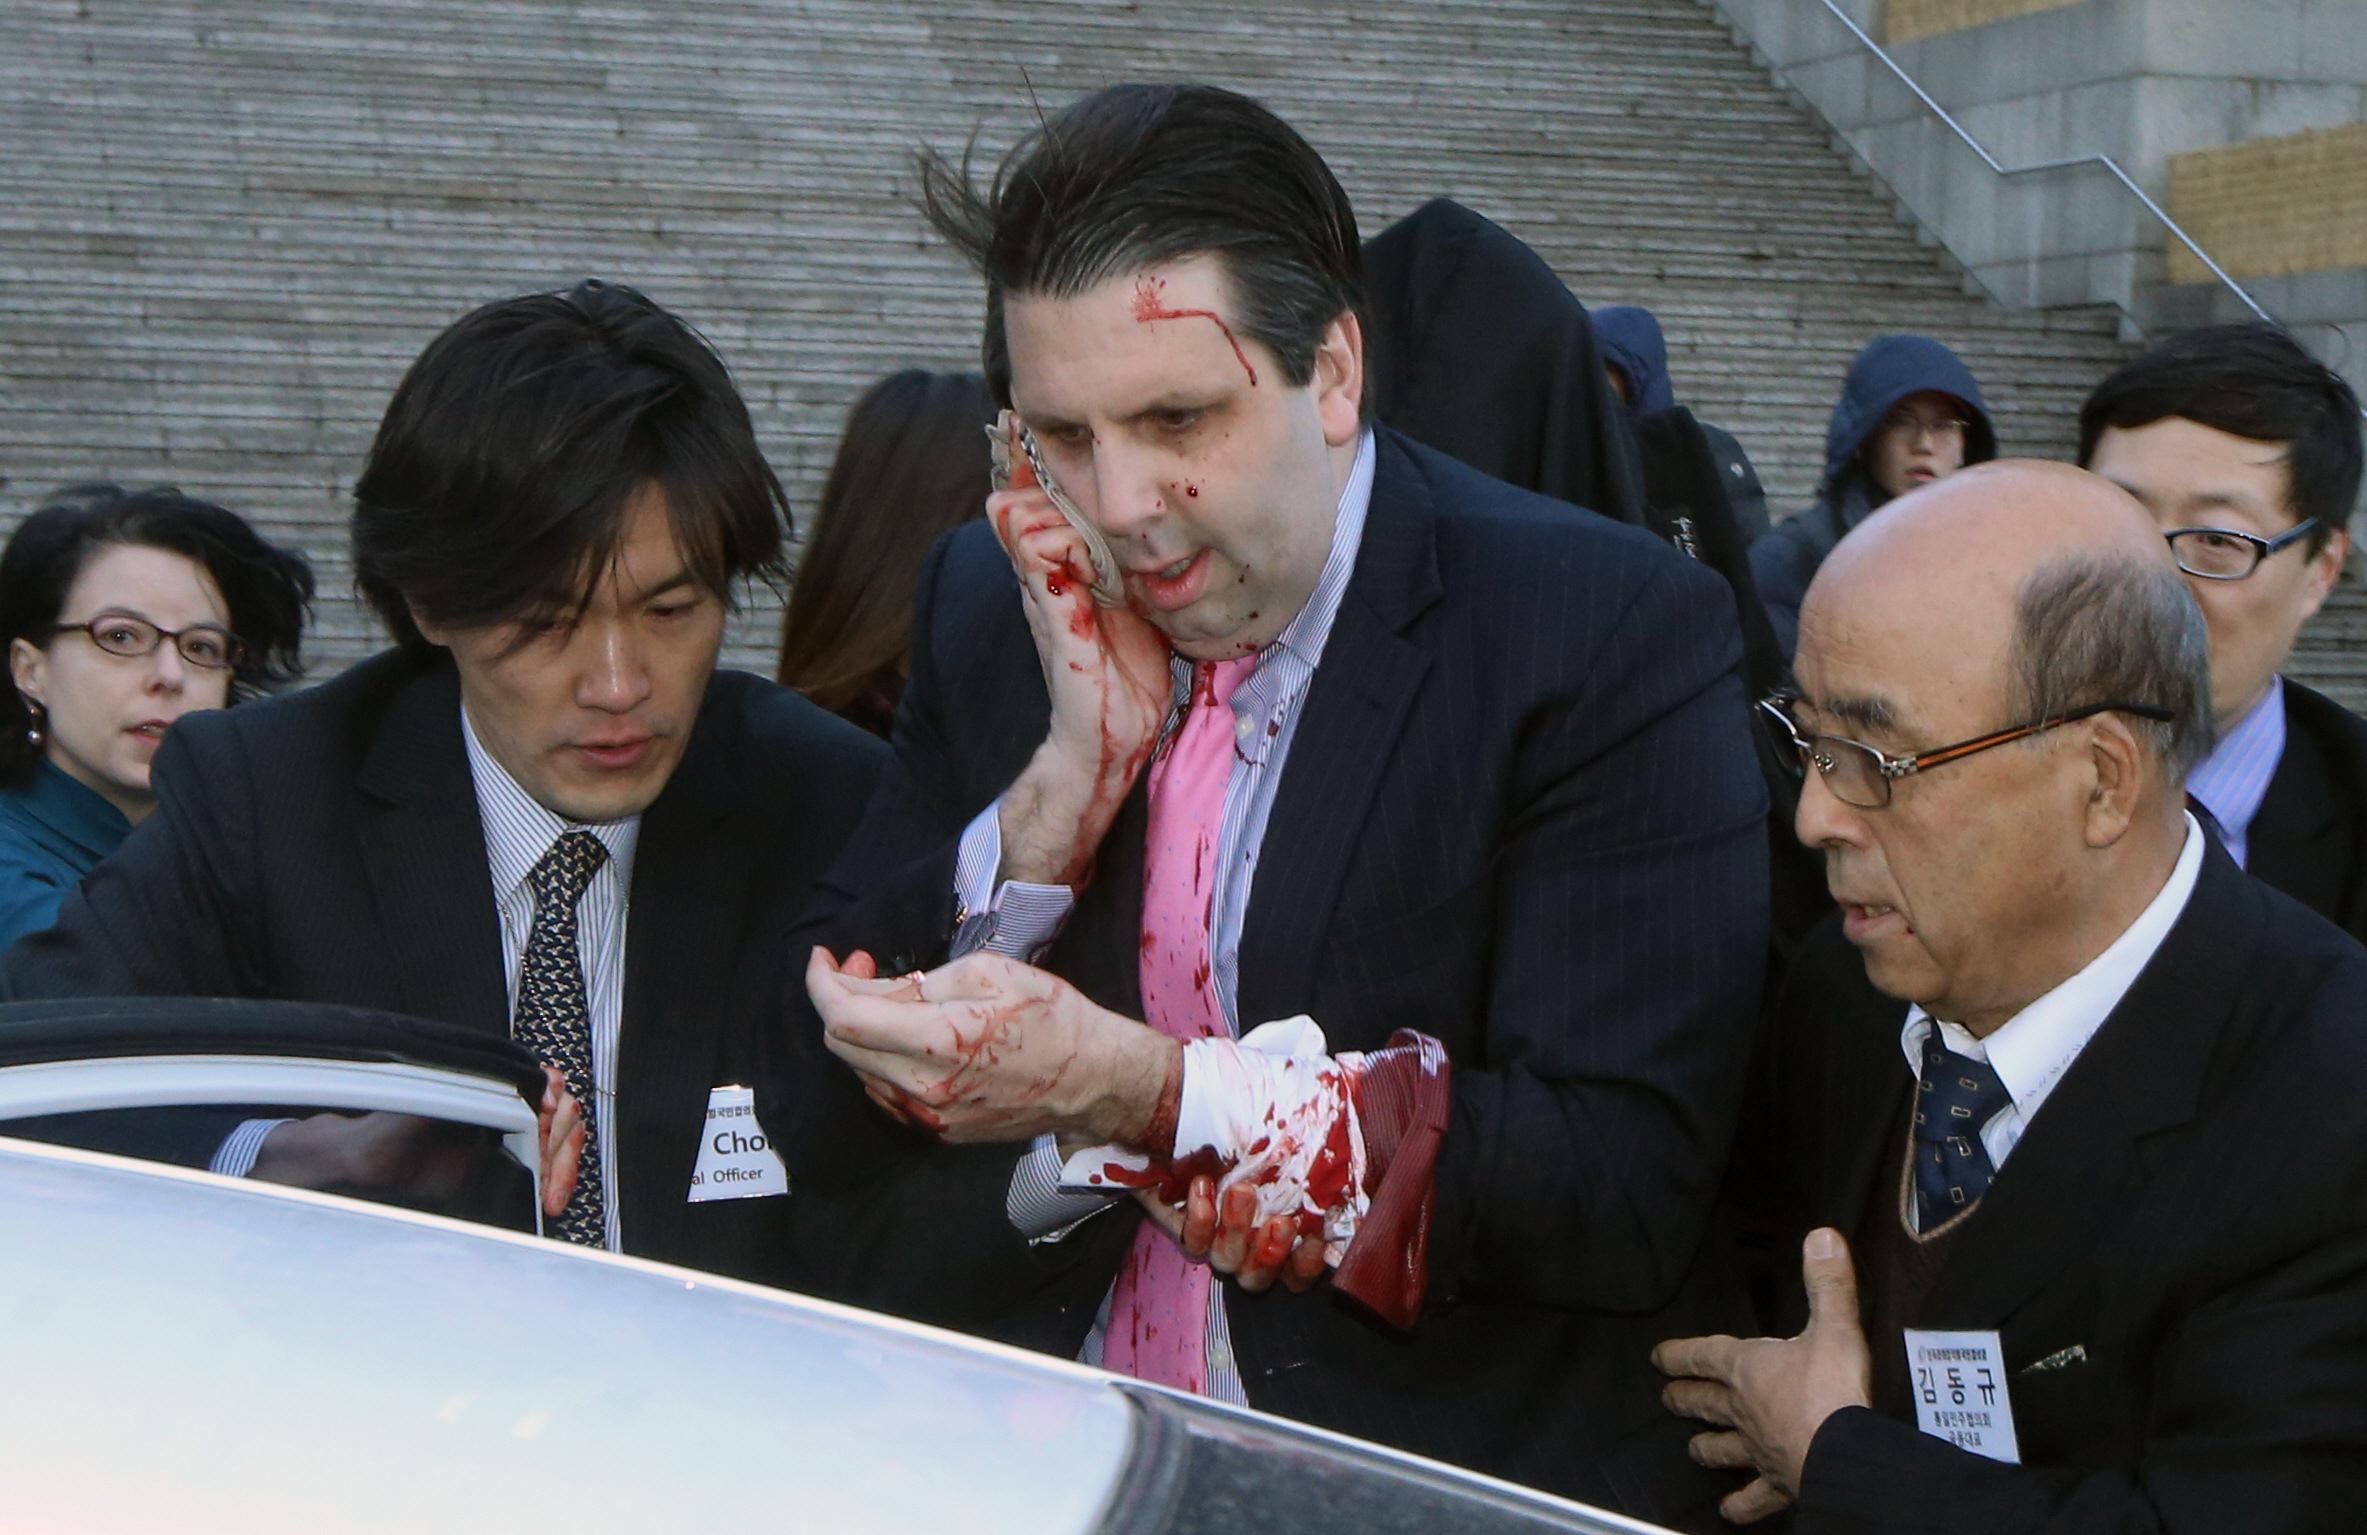 U.S. Ambassador to South Korea Mark Lippert leaves after he was slashed in the face by an unidentified assailant at a public forum in central Seoul March 5, 2015. PHOTO: REUTERS